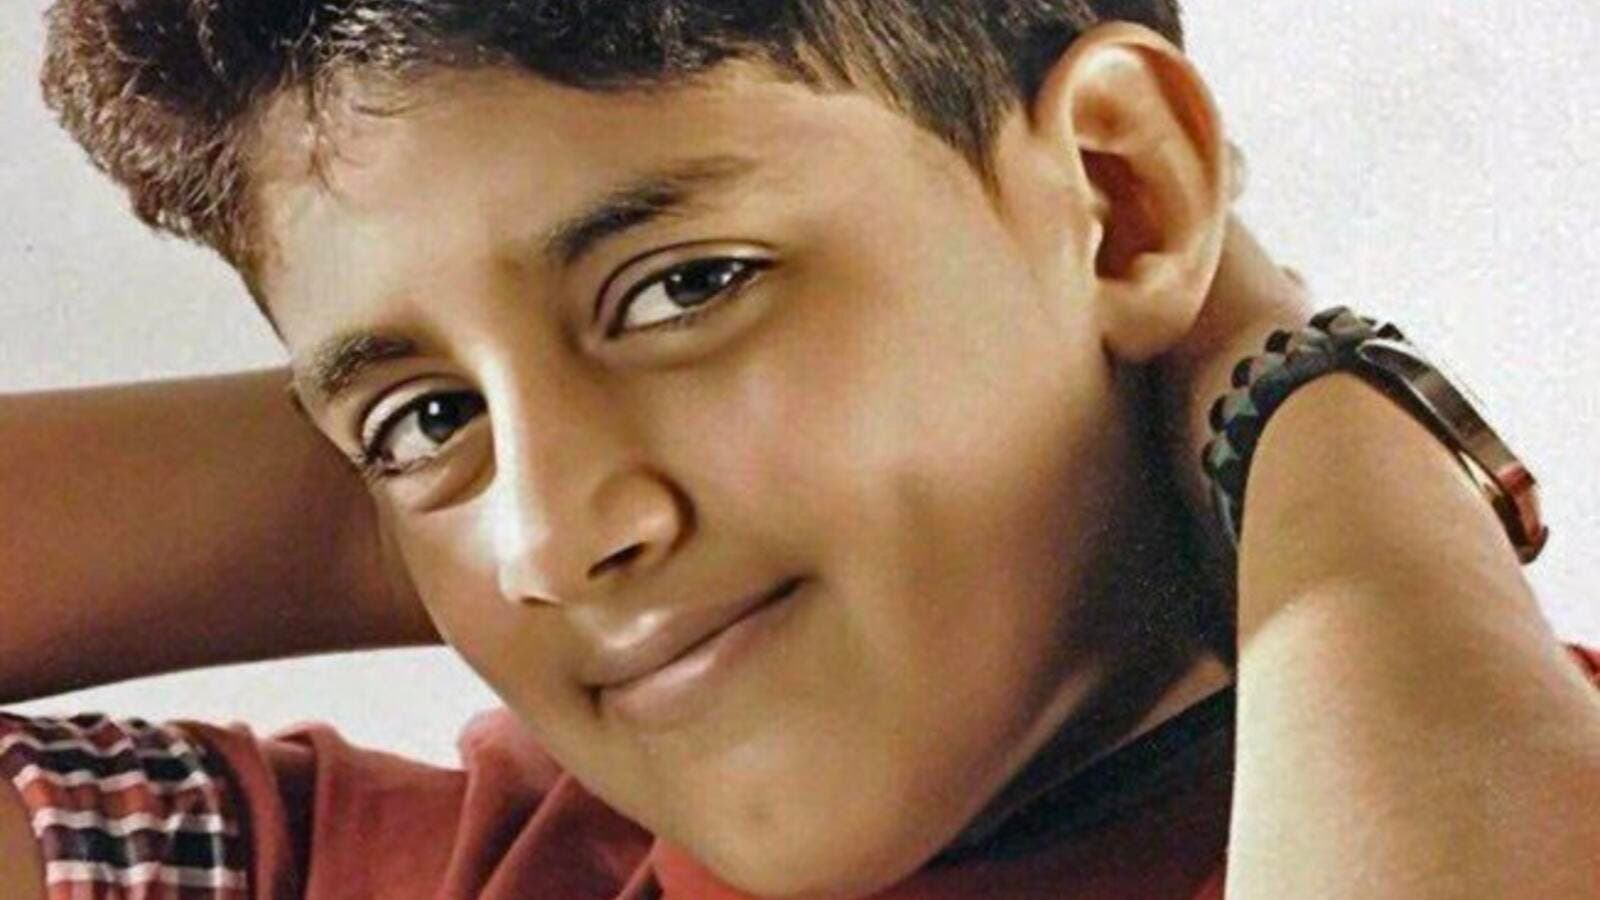 Saudi Arabia Plans to Behead 13 Year Old Boy For a 'Bicycle